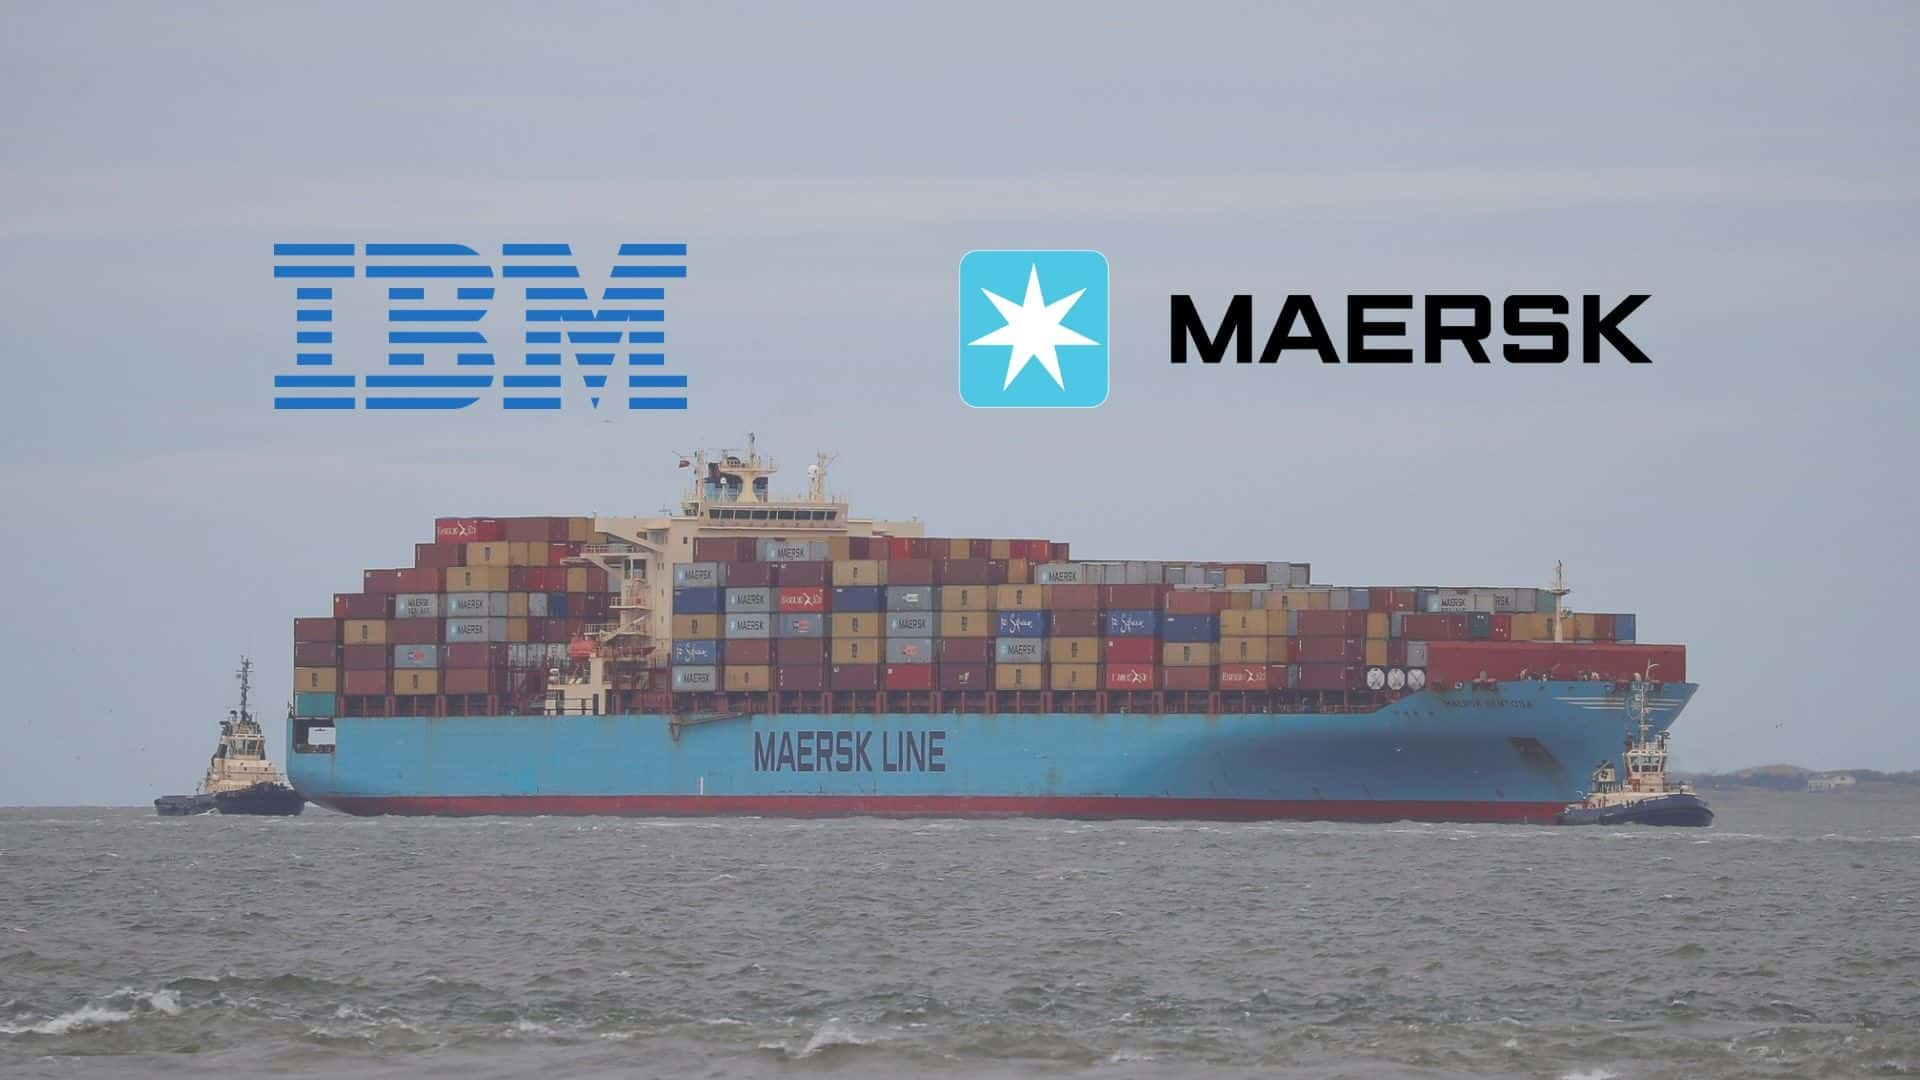 The struggles of IBM and Maersk cast a shadow on the private blockchain